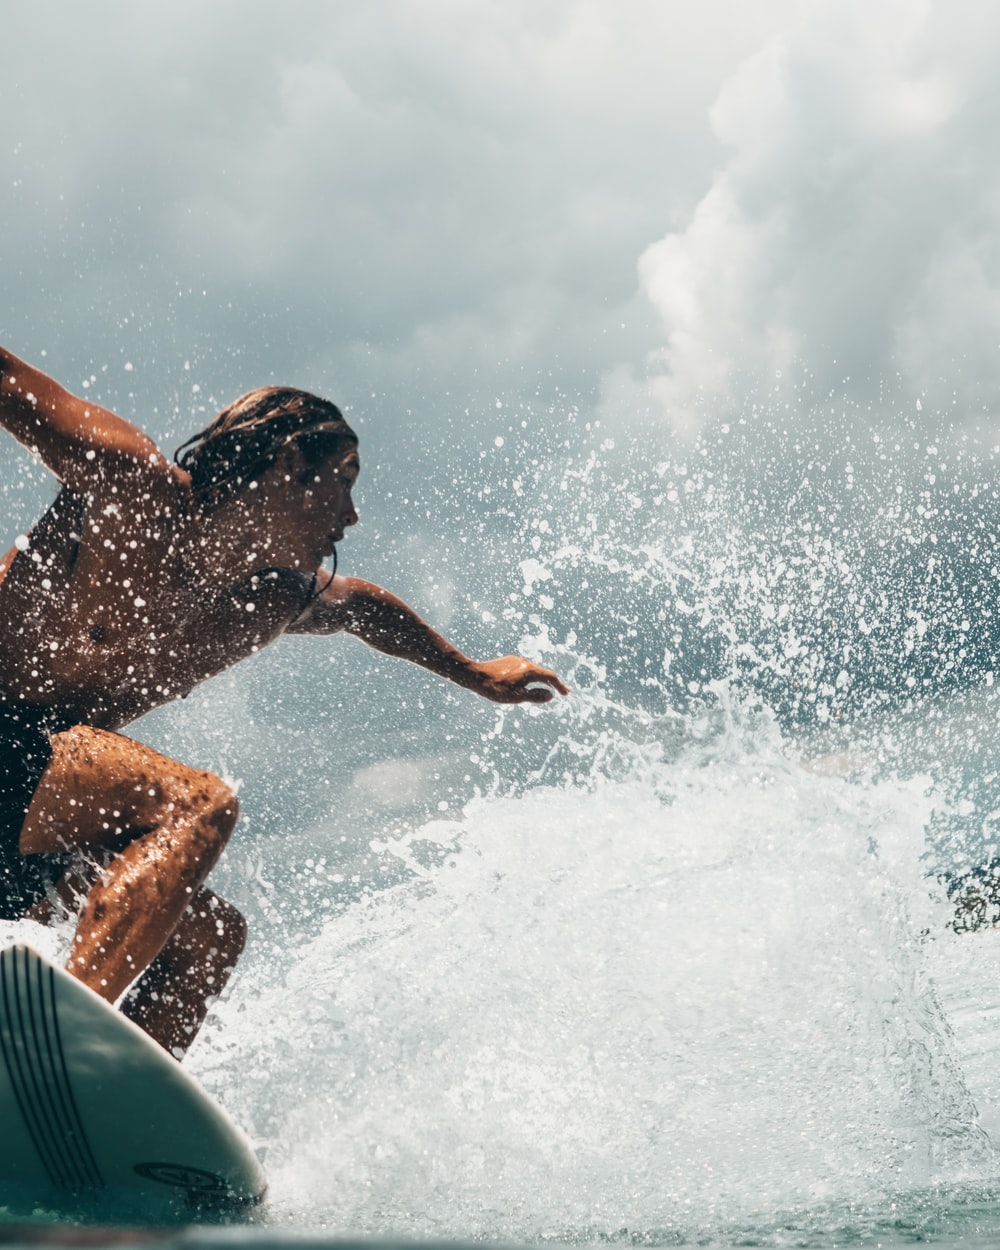 100 surfer pictures hd download free images stock photos on